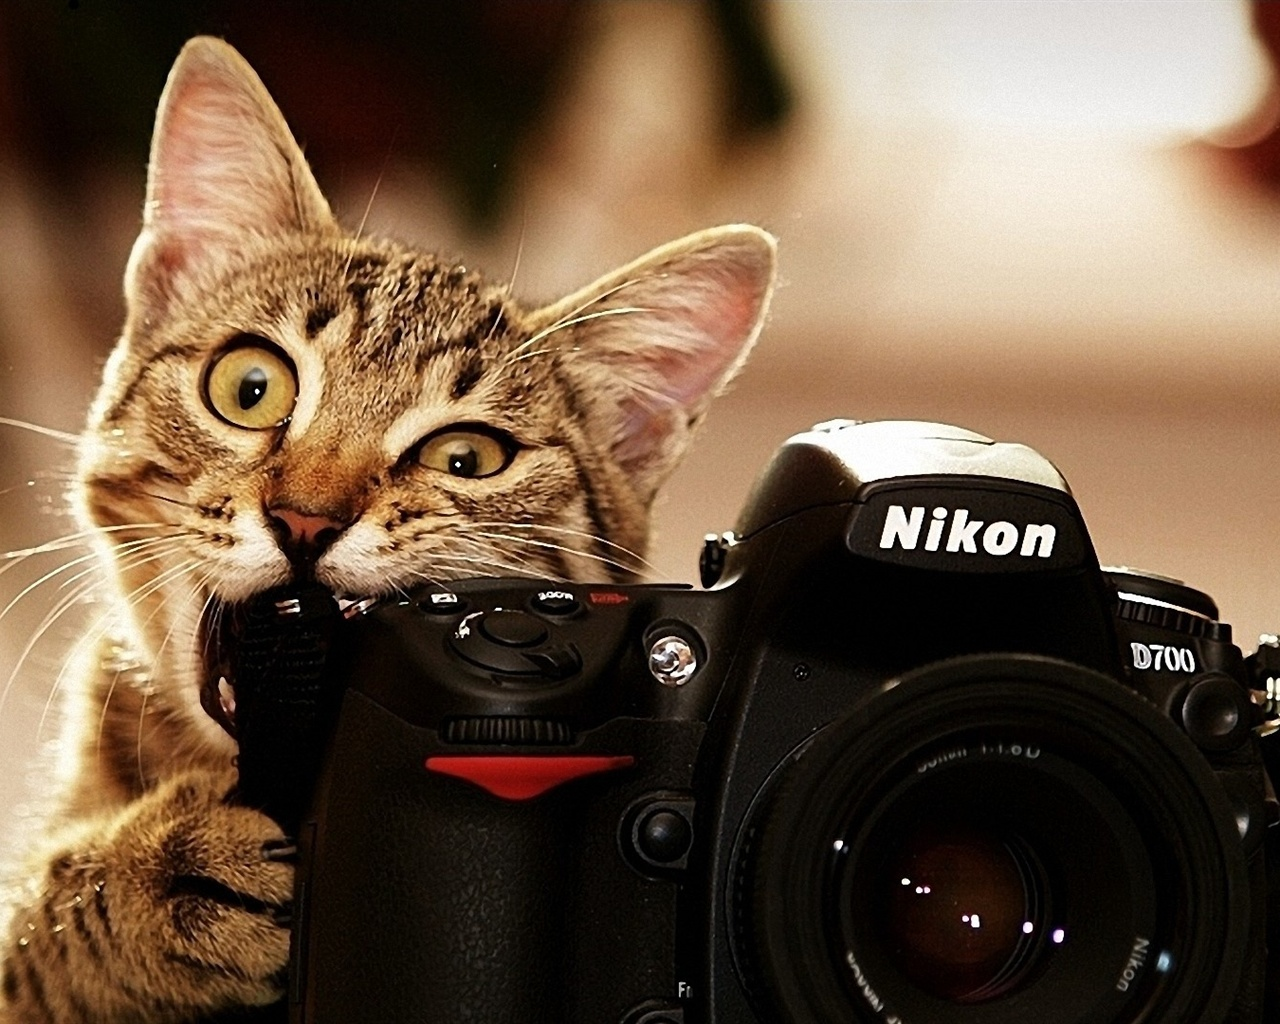 Cats also use the camera Wallpaper | 1280x1024 resolution